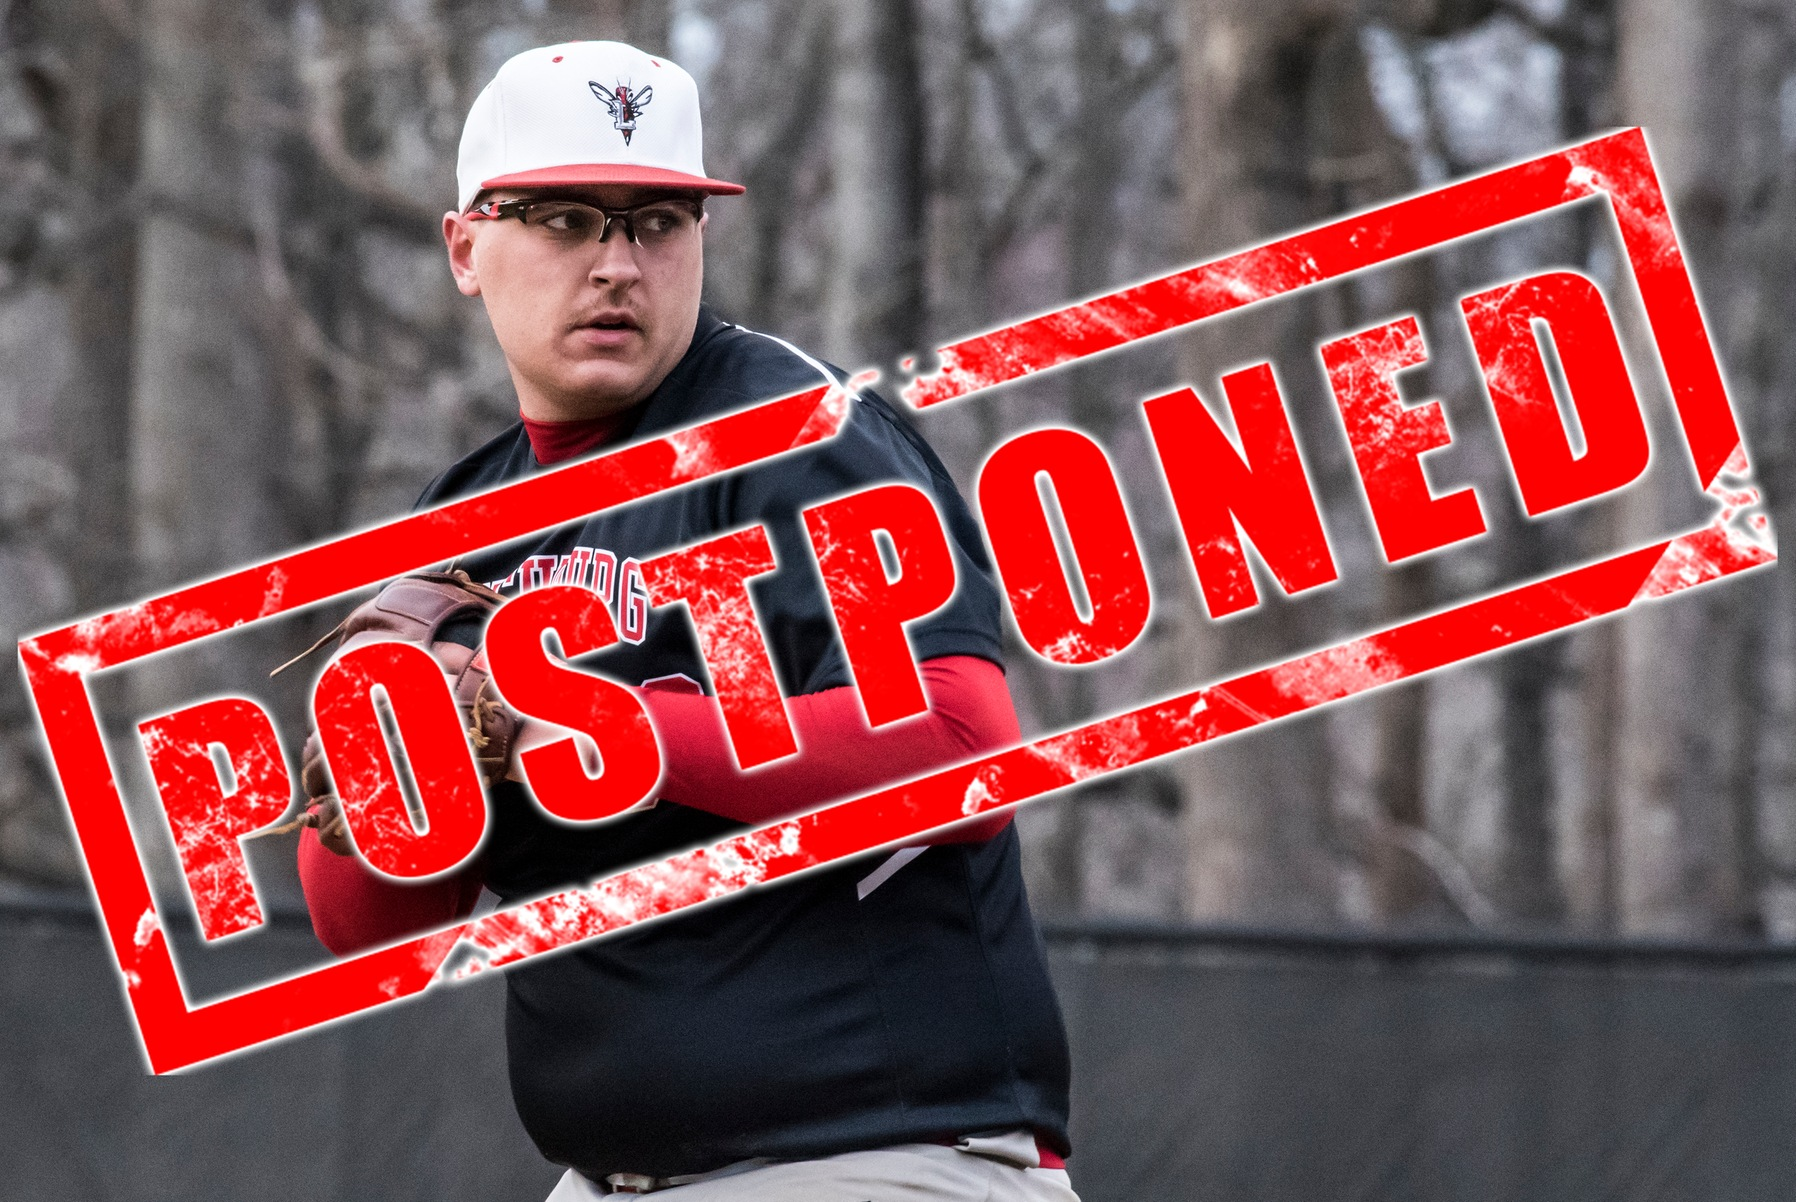 Brady Moore throws a pitch. Text: Postponed.